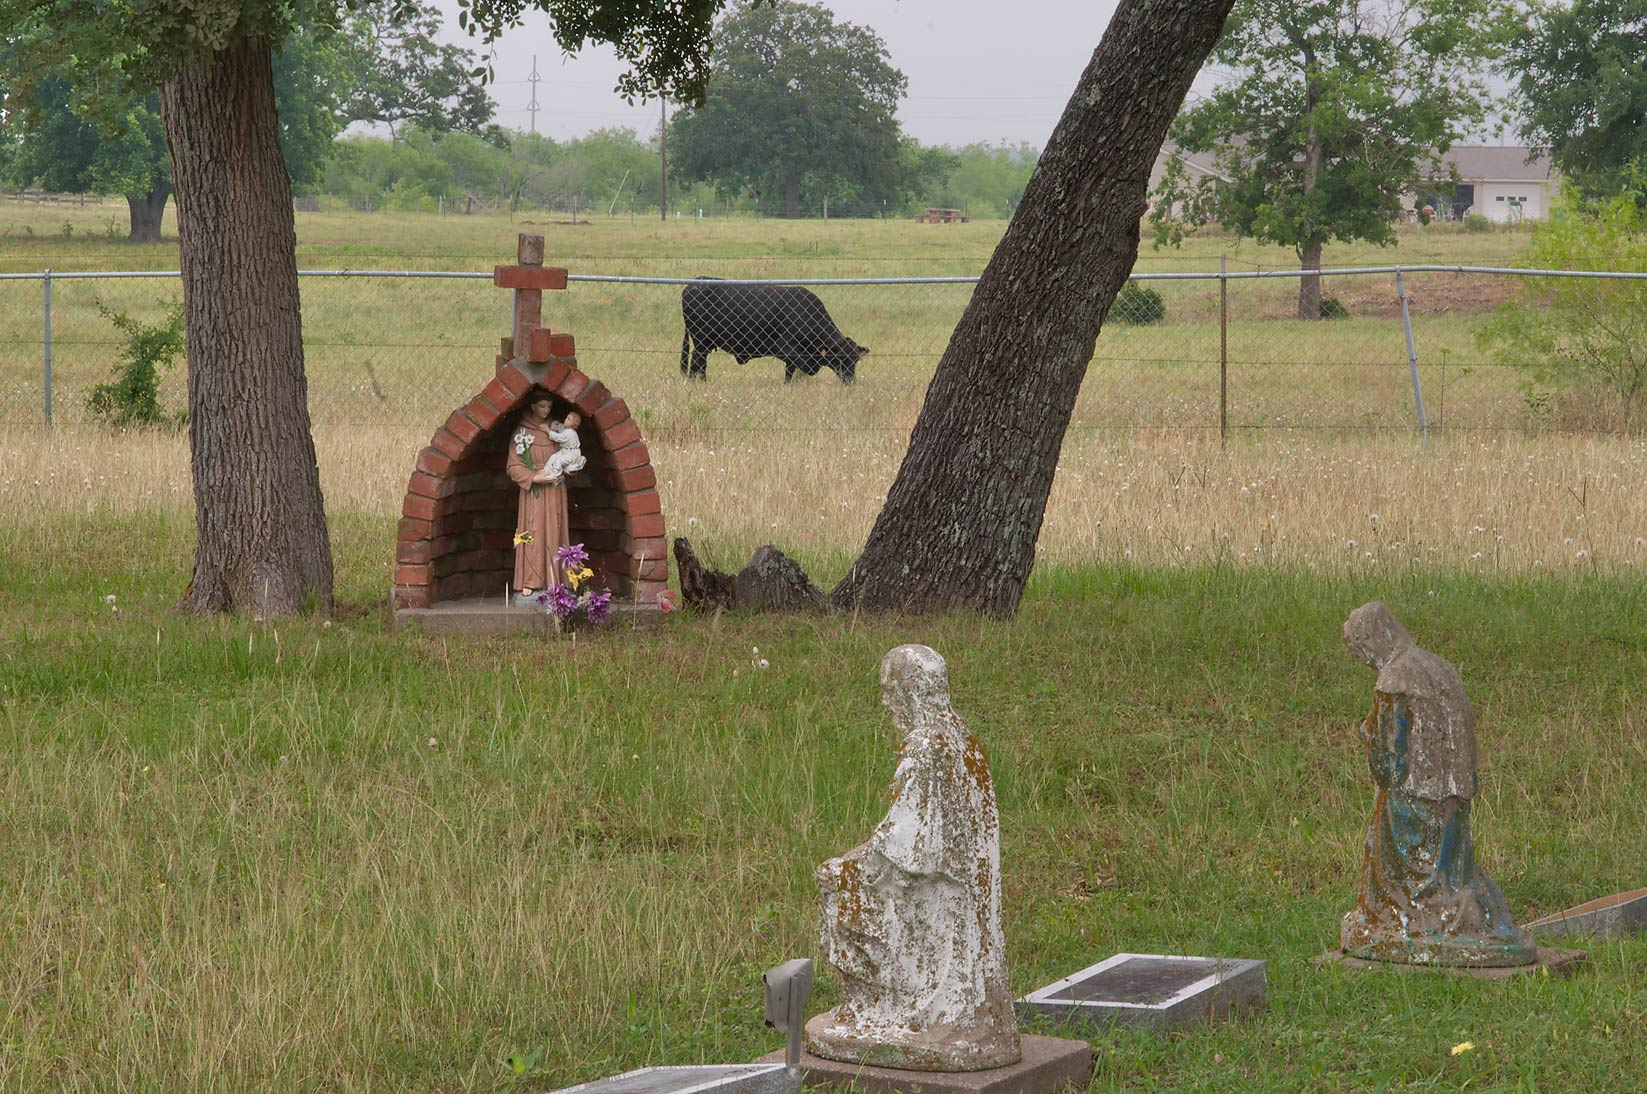 Tombs and cows in a cemetery at Mission de Cristo...Port Sullivan, west from Hearne. Texas